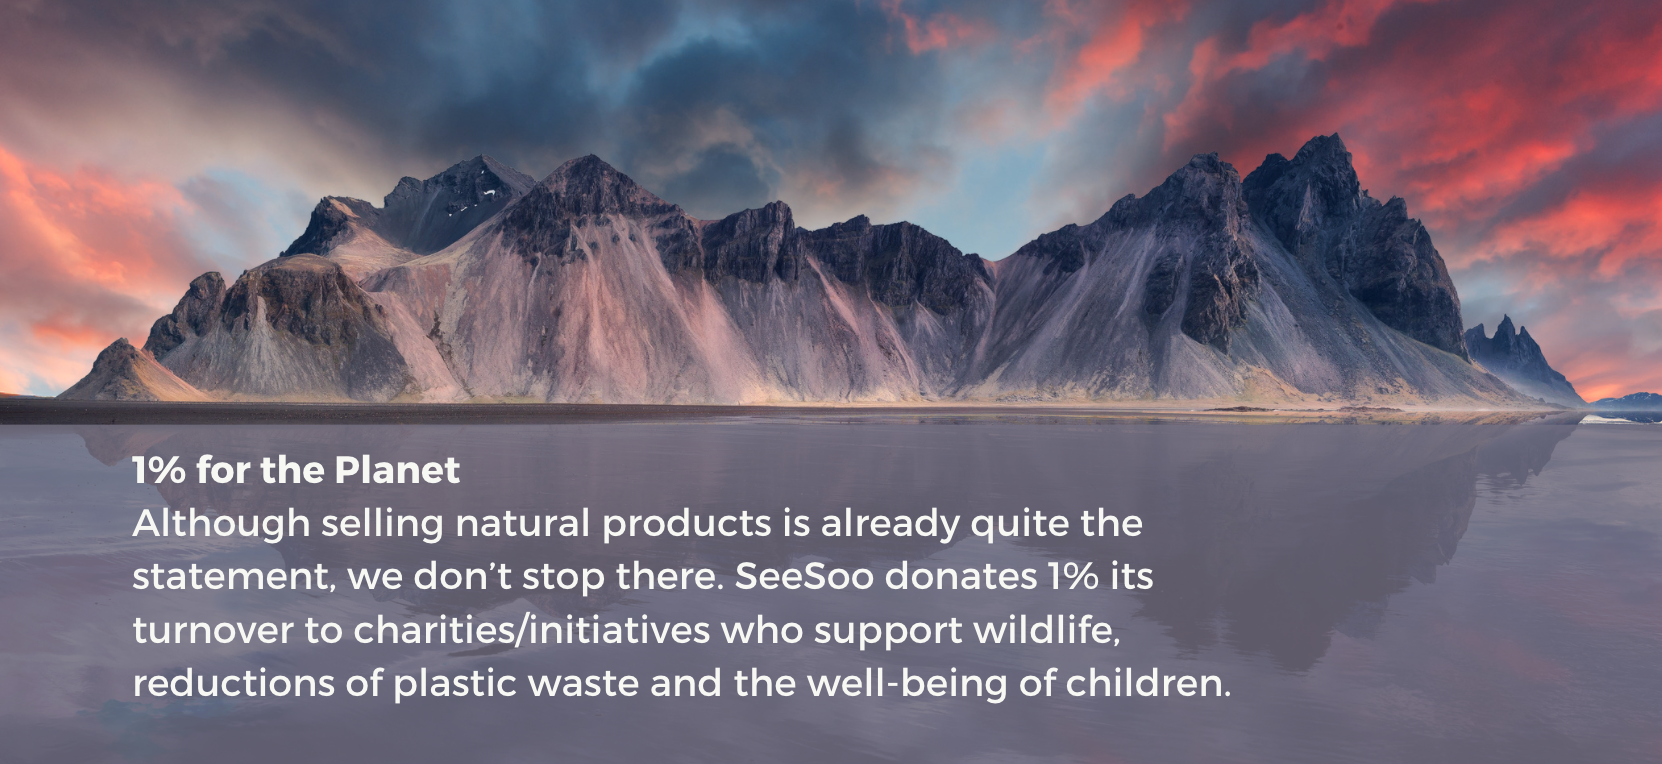 Seesoo donates 1% of its turnover to the planet